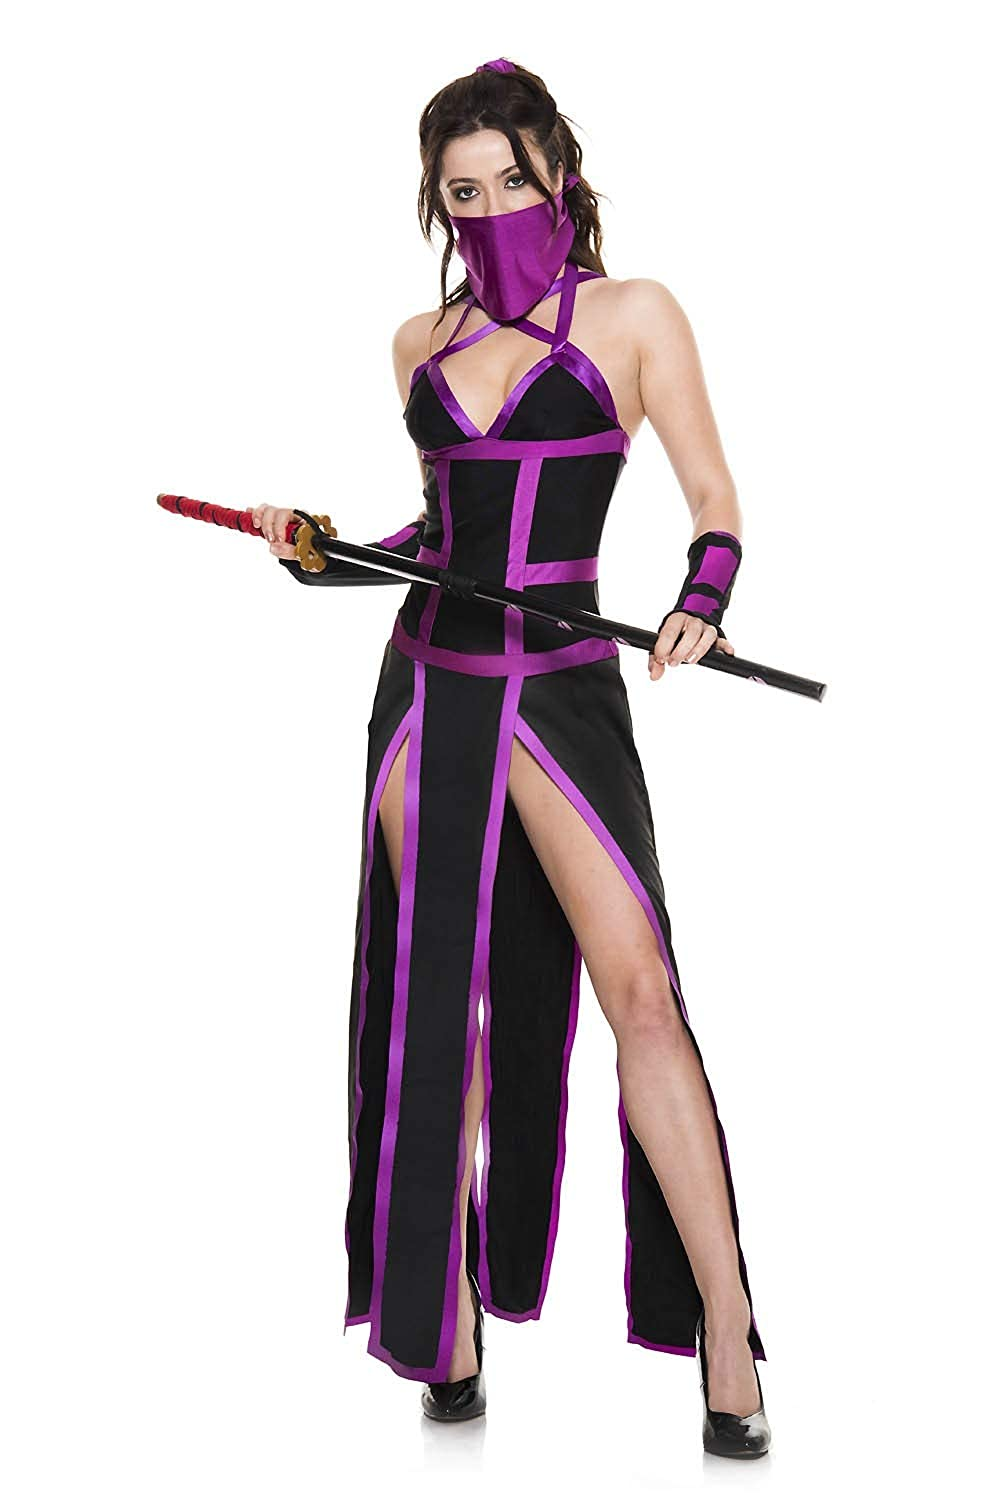 Amazon.com: 4 PC. Ladies Slay Ninja Costume Set: Clothing